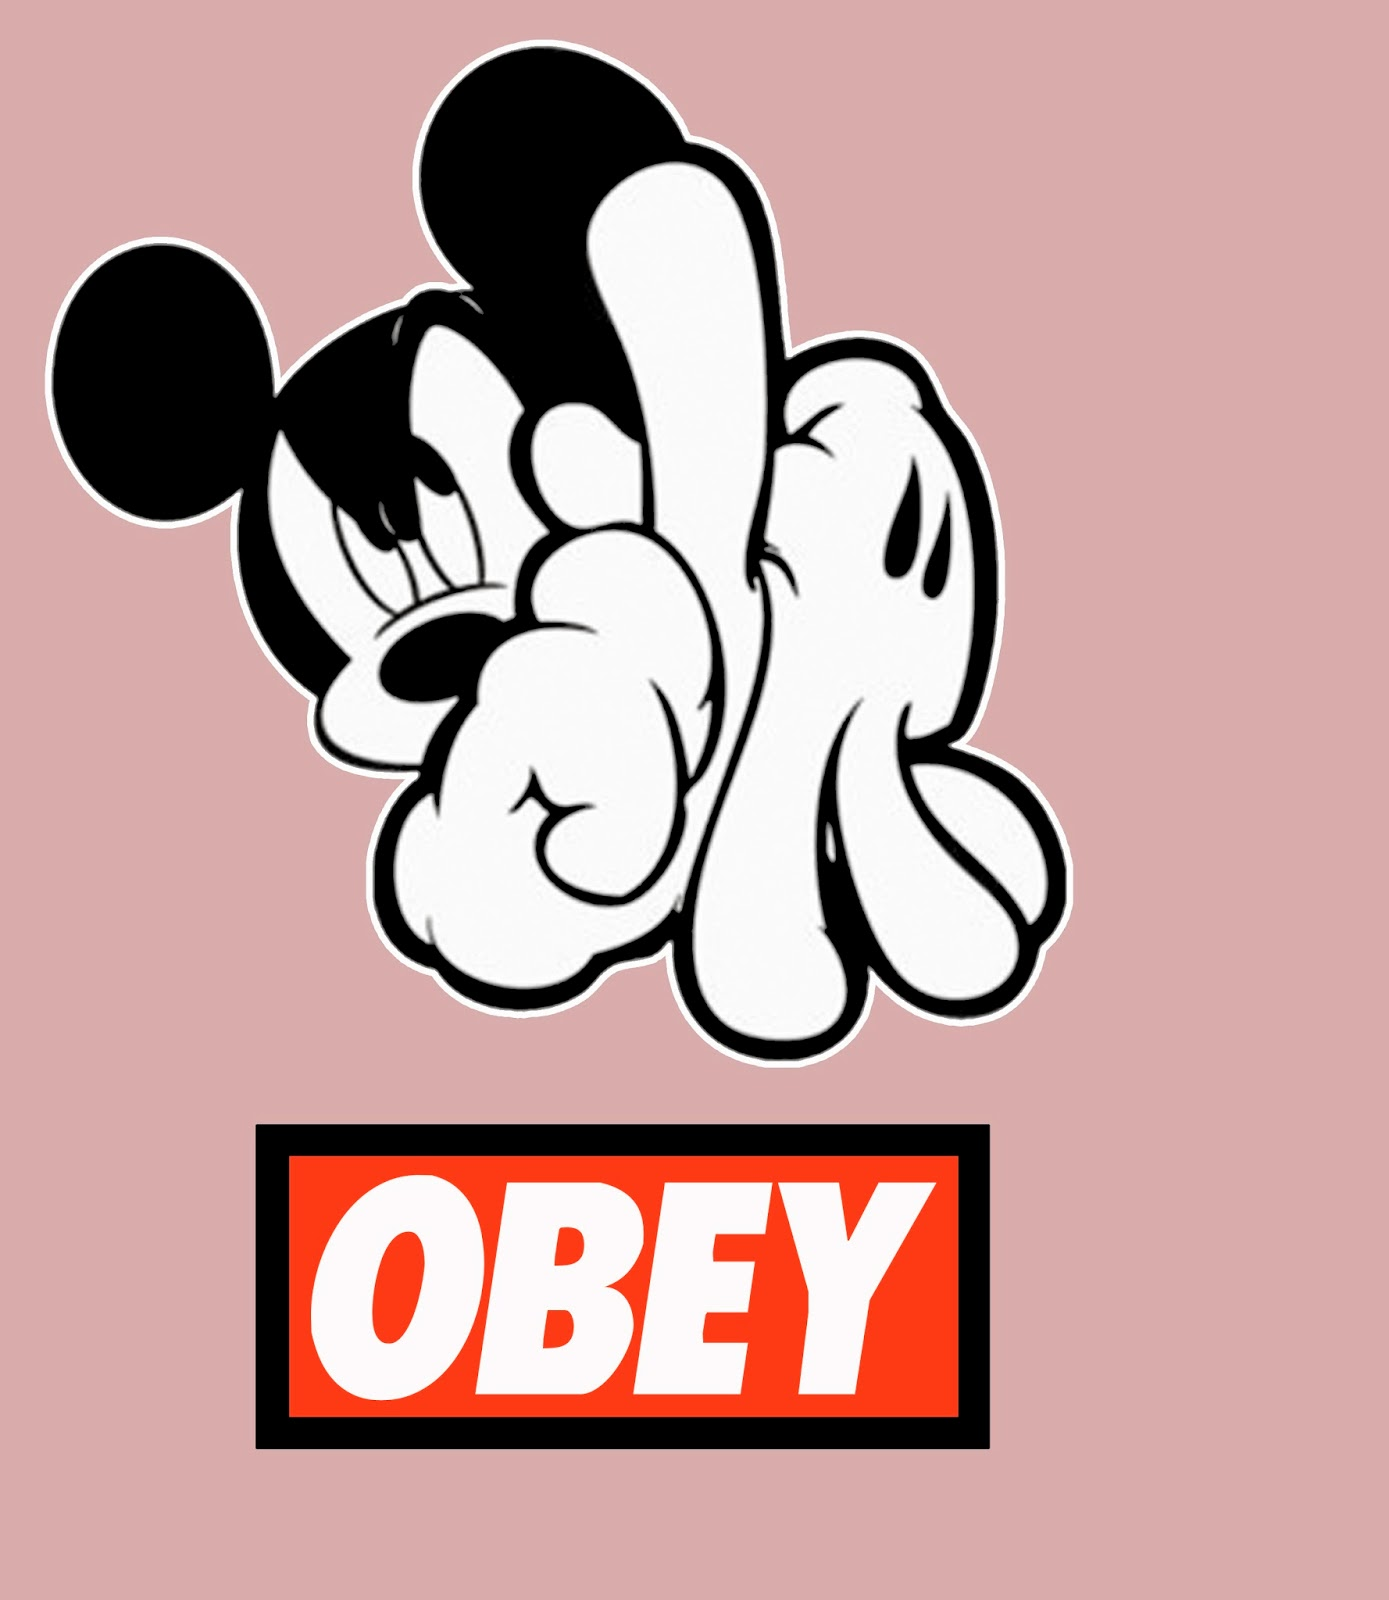 Keywords Obey Mickey Mouse Hands Wallpaper and Tags